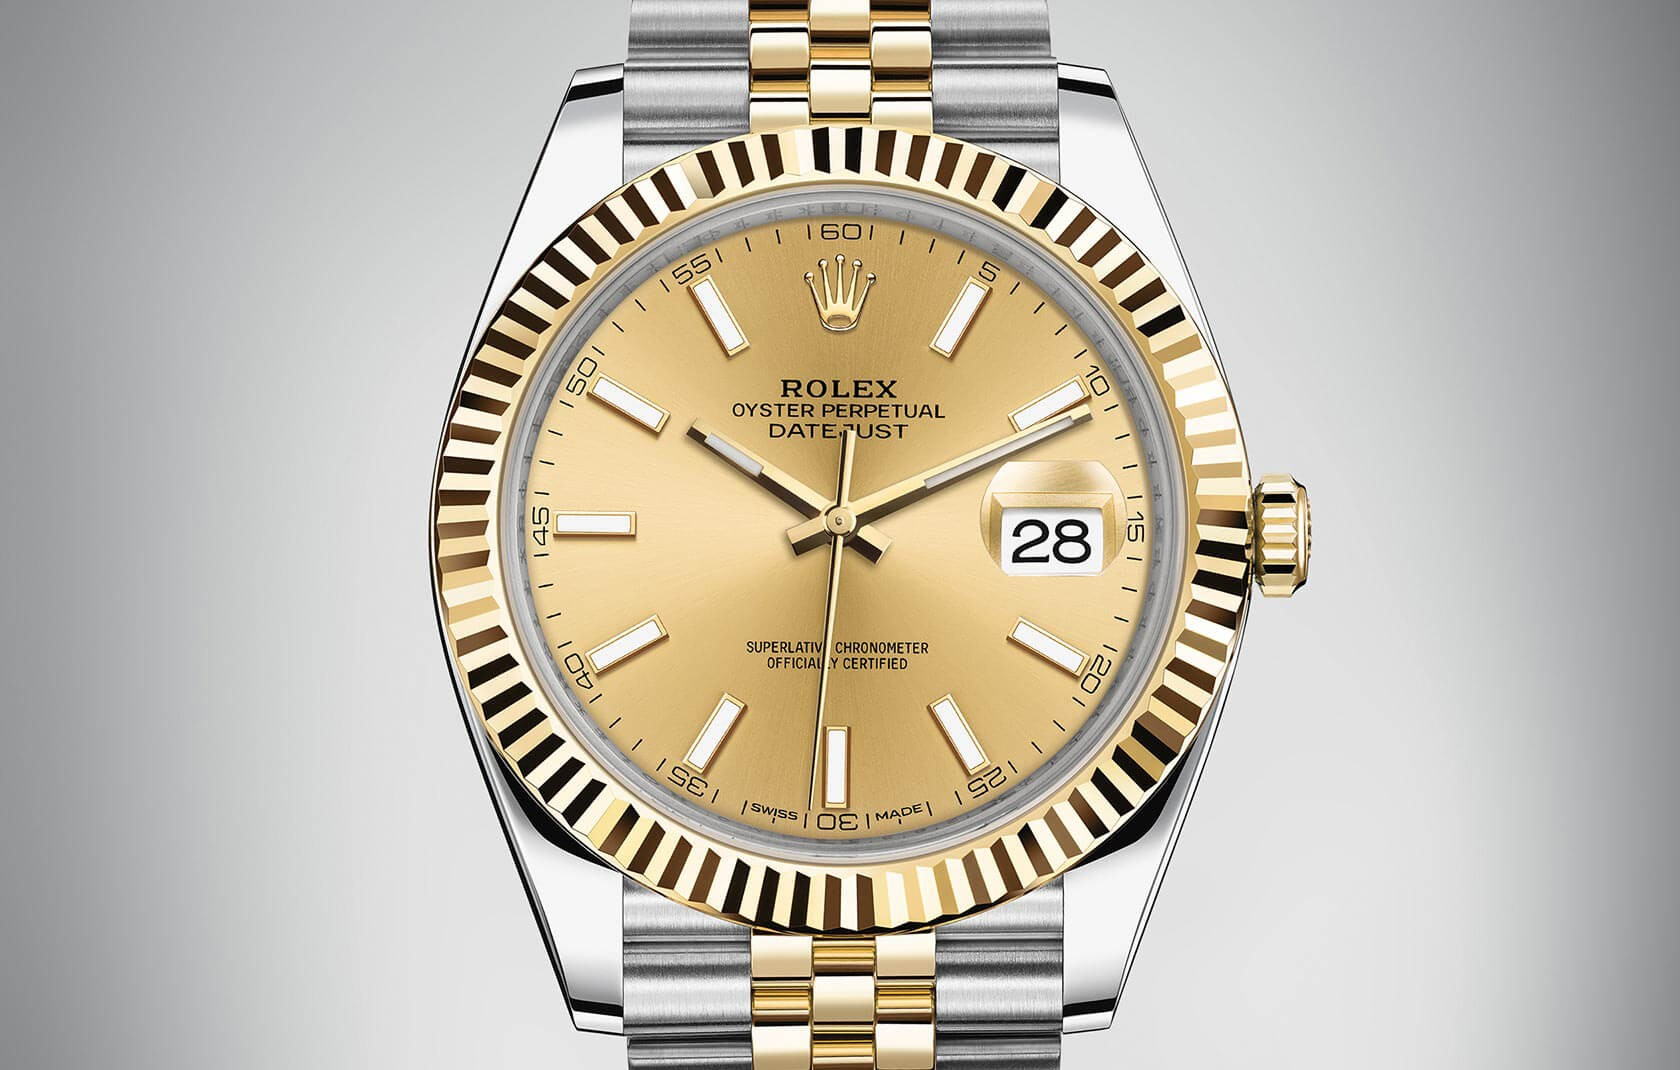 Rolex DateJust Swiss Automatic Watch Golden Dial